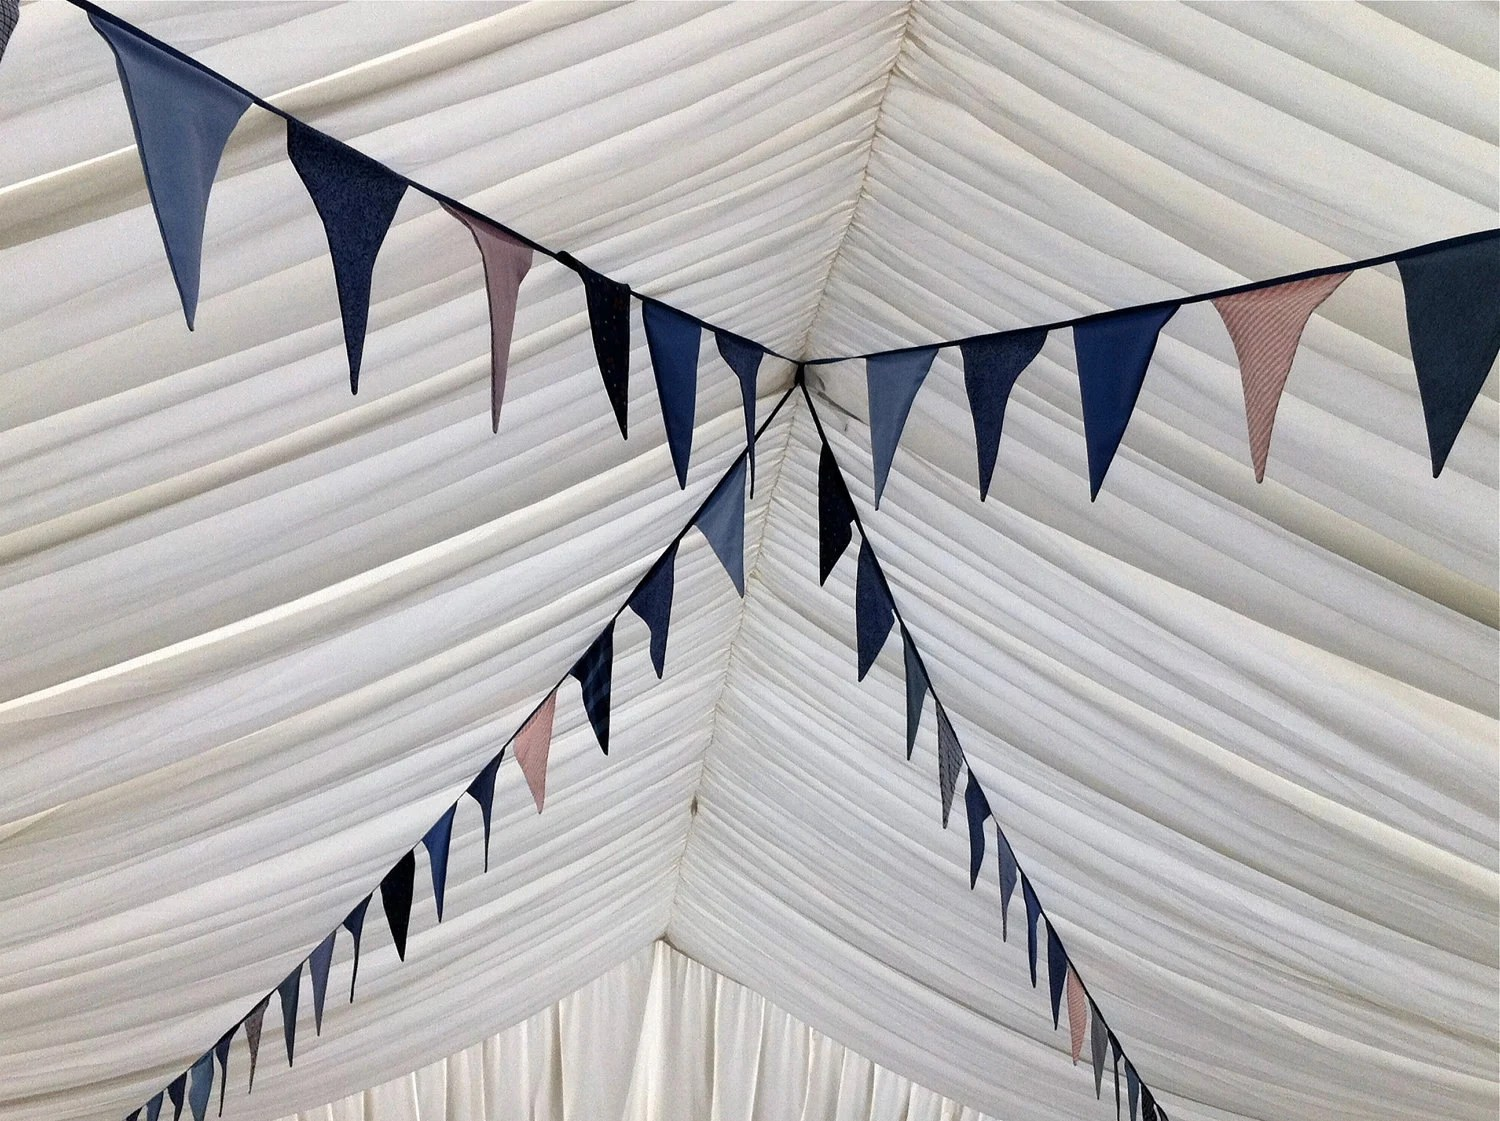 Marquee Wedding Decoration Bunting in Soft Blues, Violets and Creams - 29 Feet Length